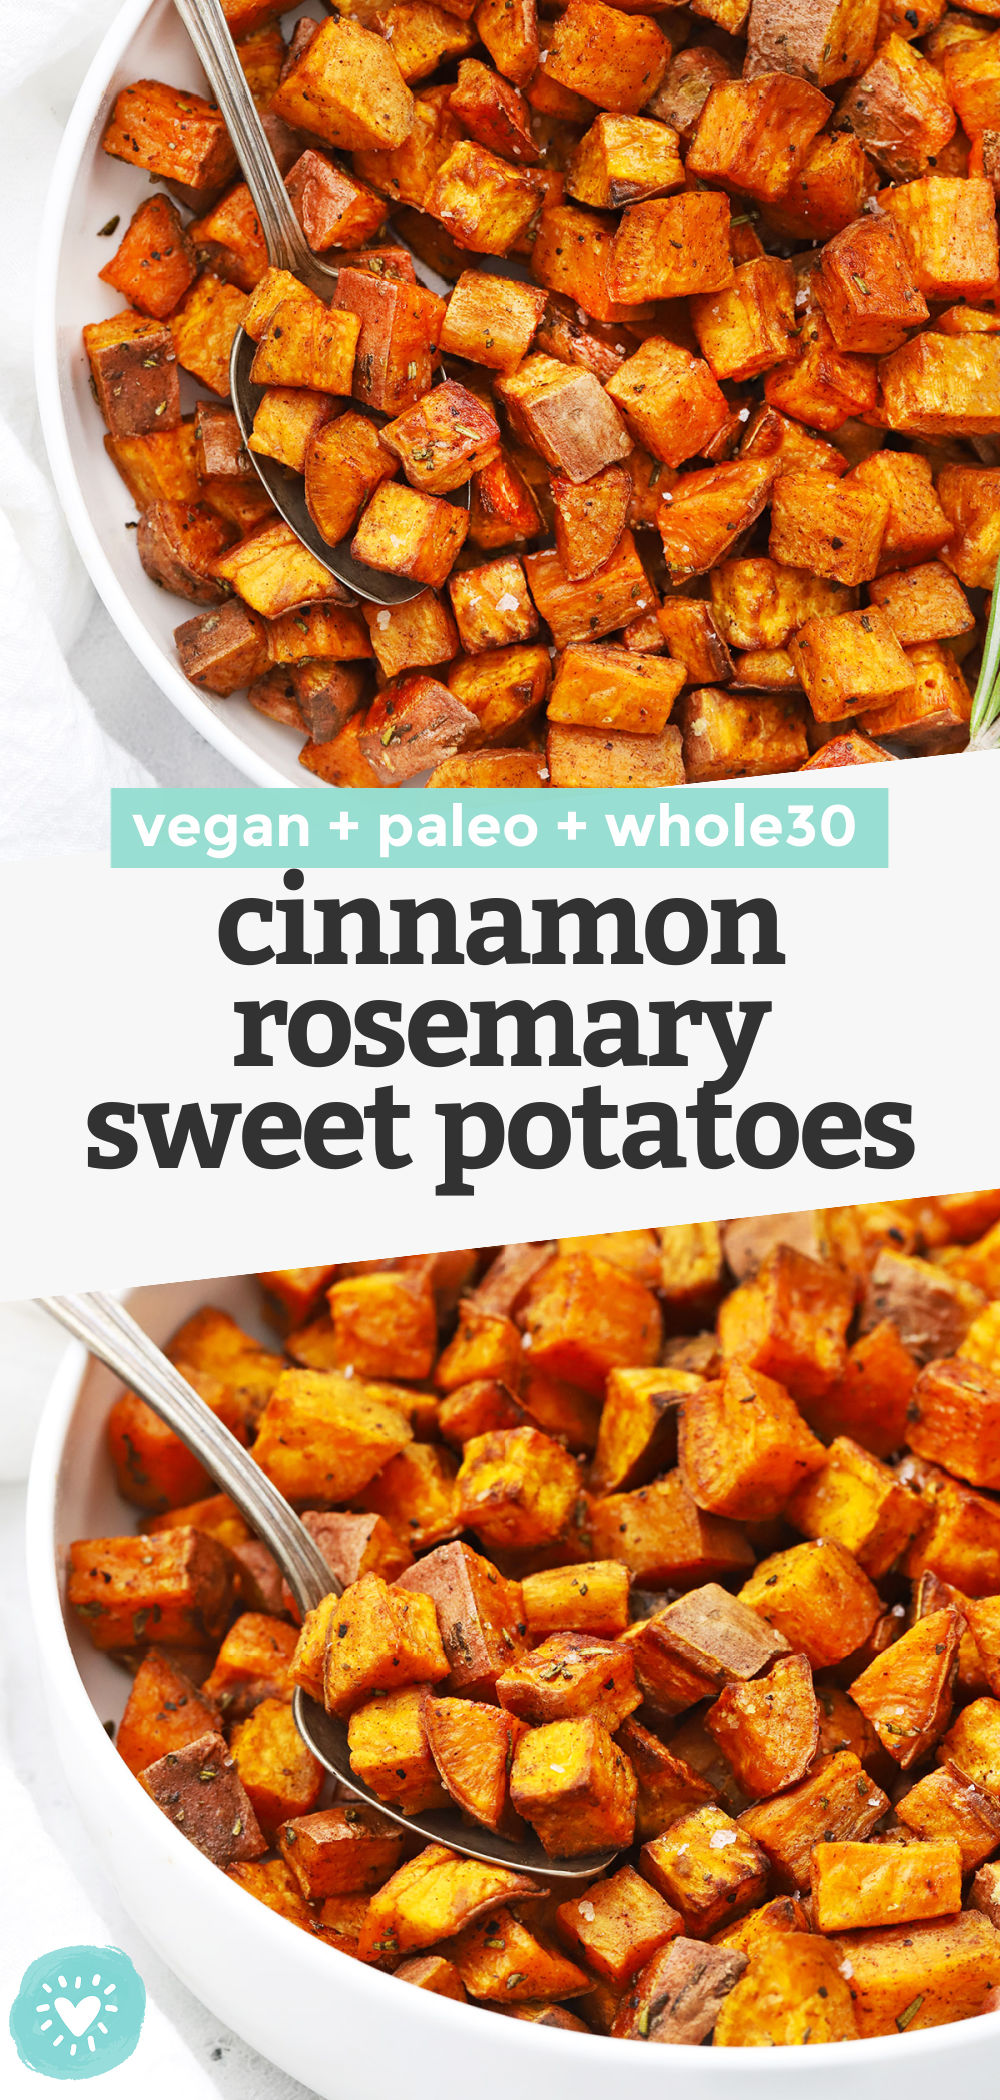 Cinnamon Rosemary Sweet Potatoes - These roasted rosemary sweet potatoes have a gorgeous caramelized texture and a delicious blend of flavors you'll crave over and over again. (Paleo, Vegan, Whole30) // Roasted Sweet Potatoes Recipe // Side Dish // Healthy Recipe #sweetpotatoes #sidedish #whole30 #vegan #paleo